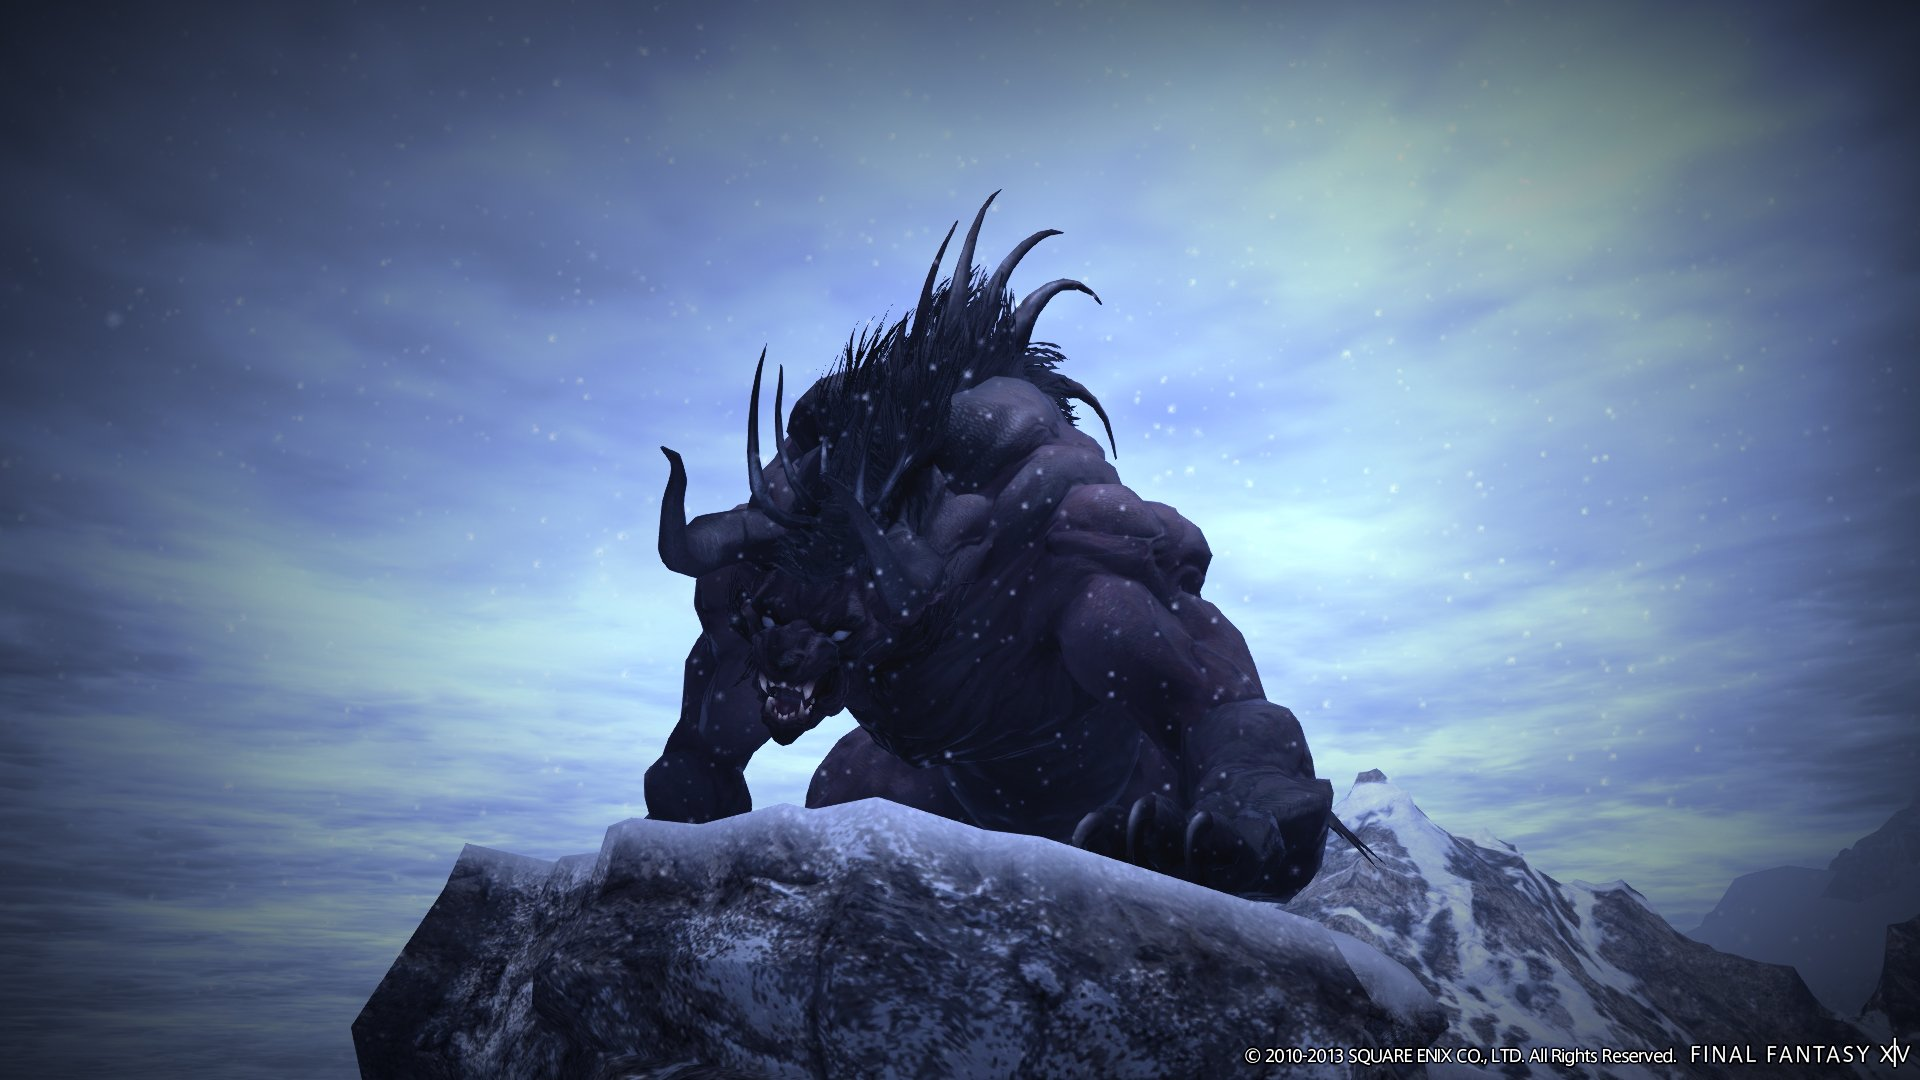 Final Fantasy Xiv A Realm Reborn Fantasy Art Wallpapers: Changing To Different Jobs